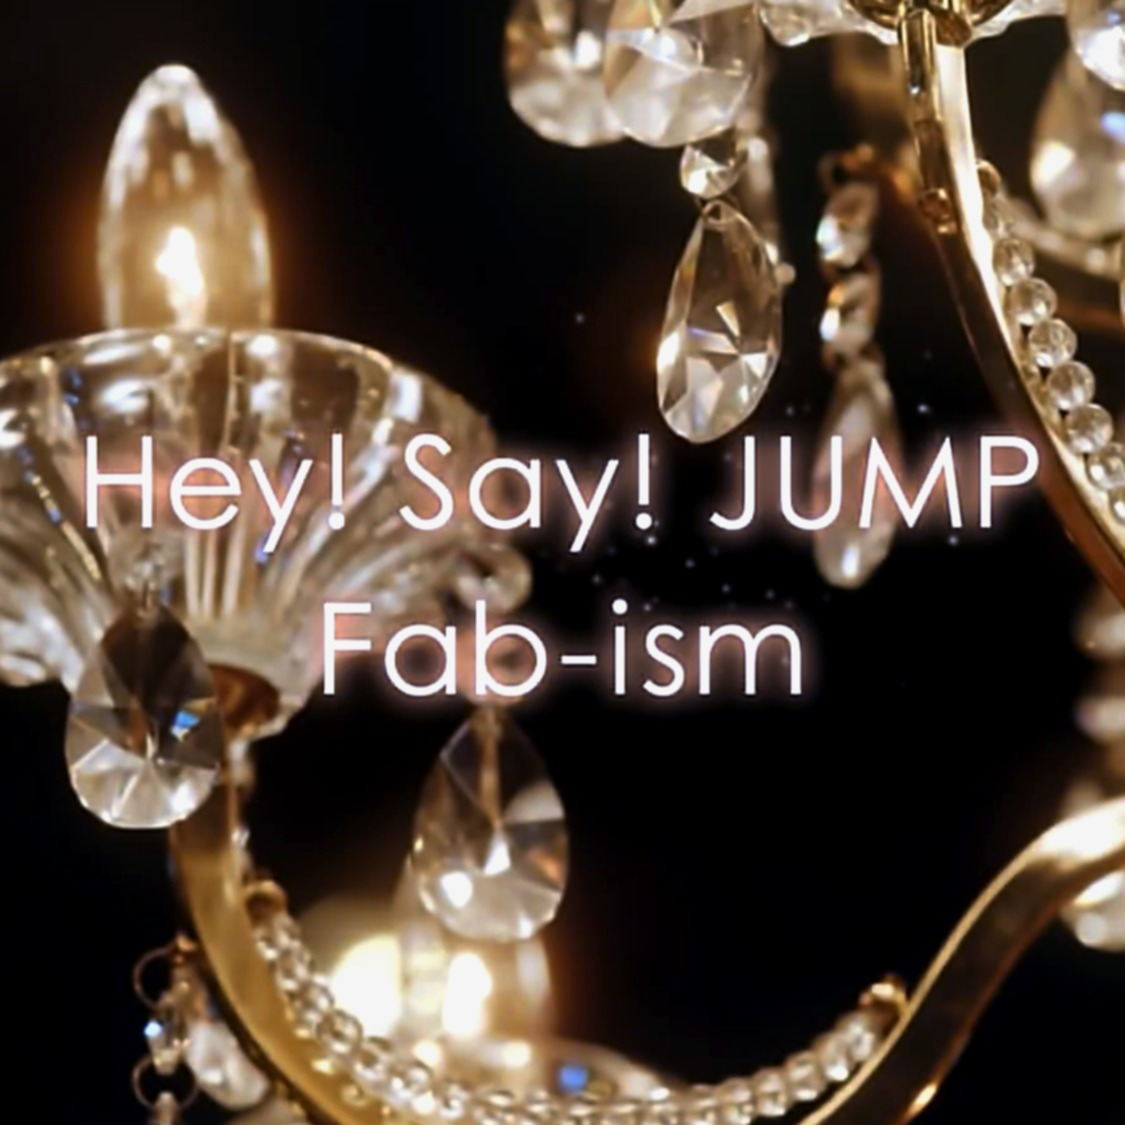 Hey!Say!JUMP「Fab-ism×smash.」(MV)